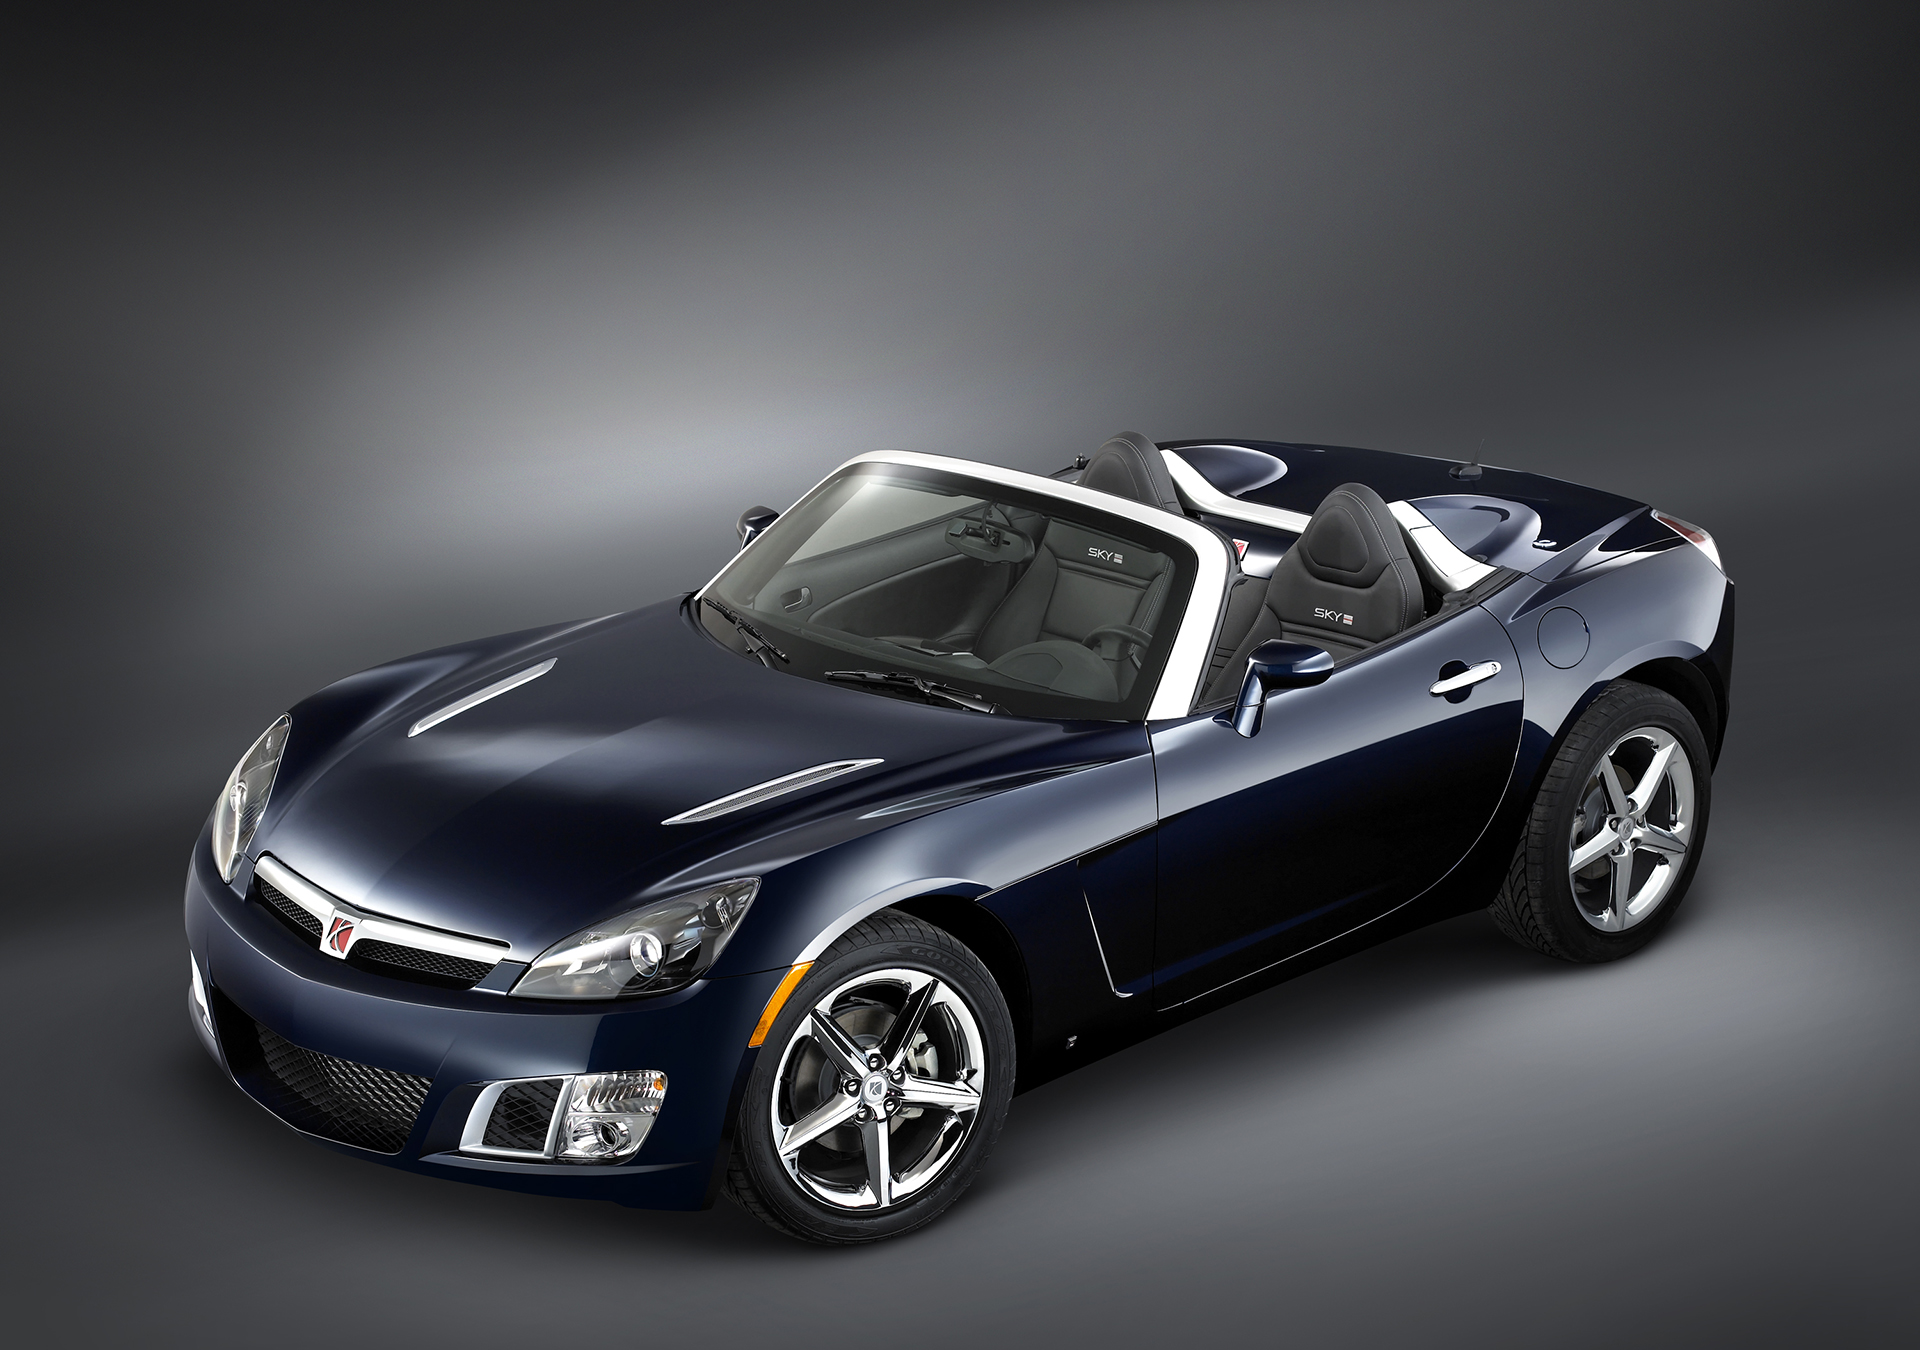 2007 Saturn Sky Red Line front three-quarter